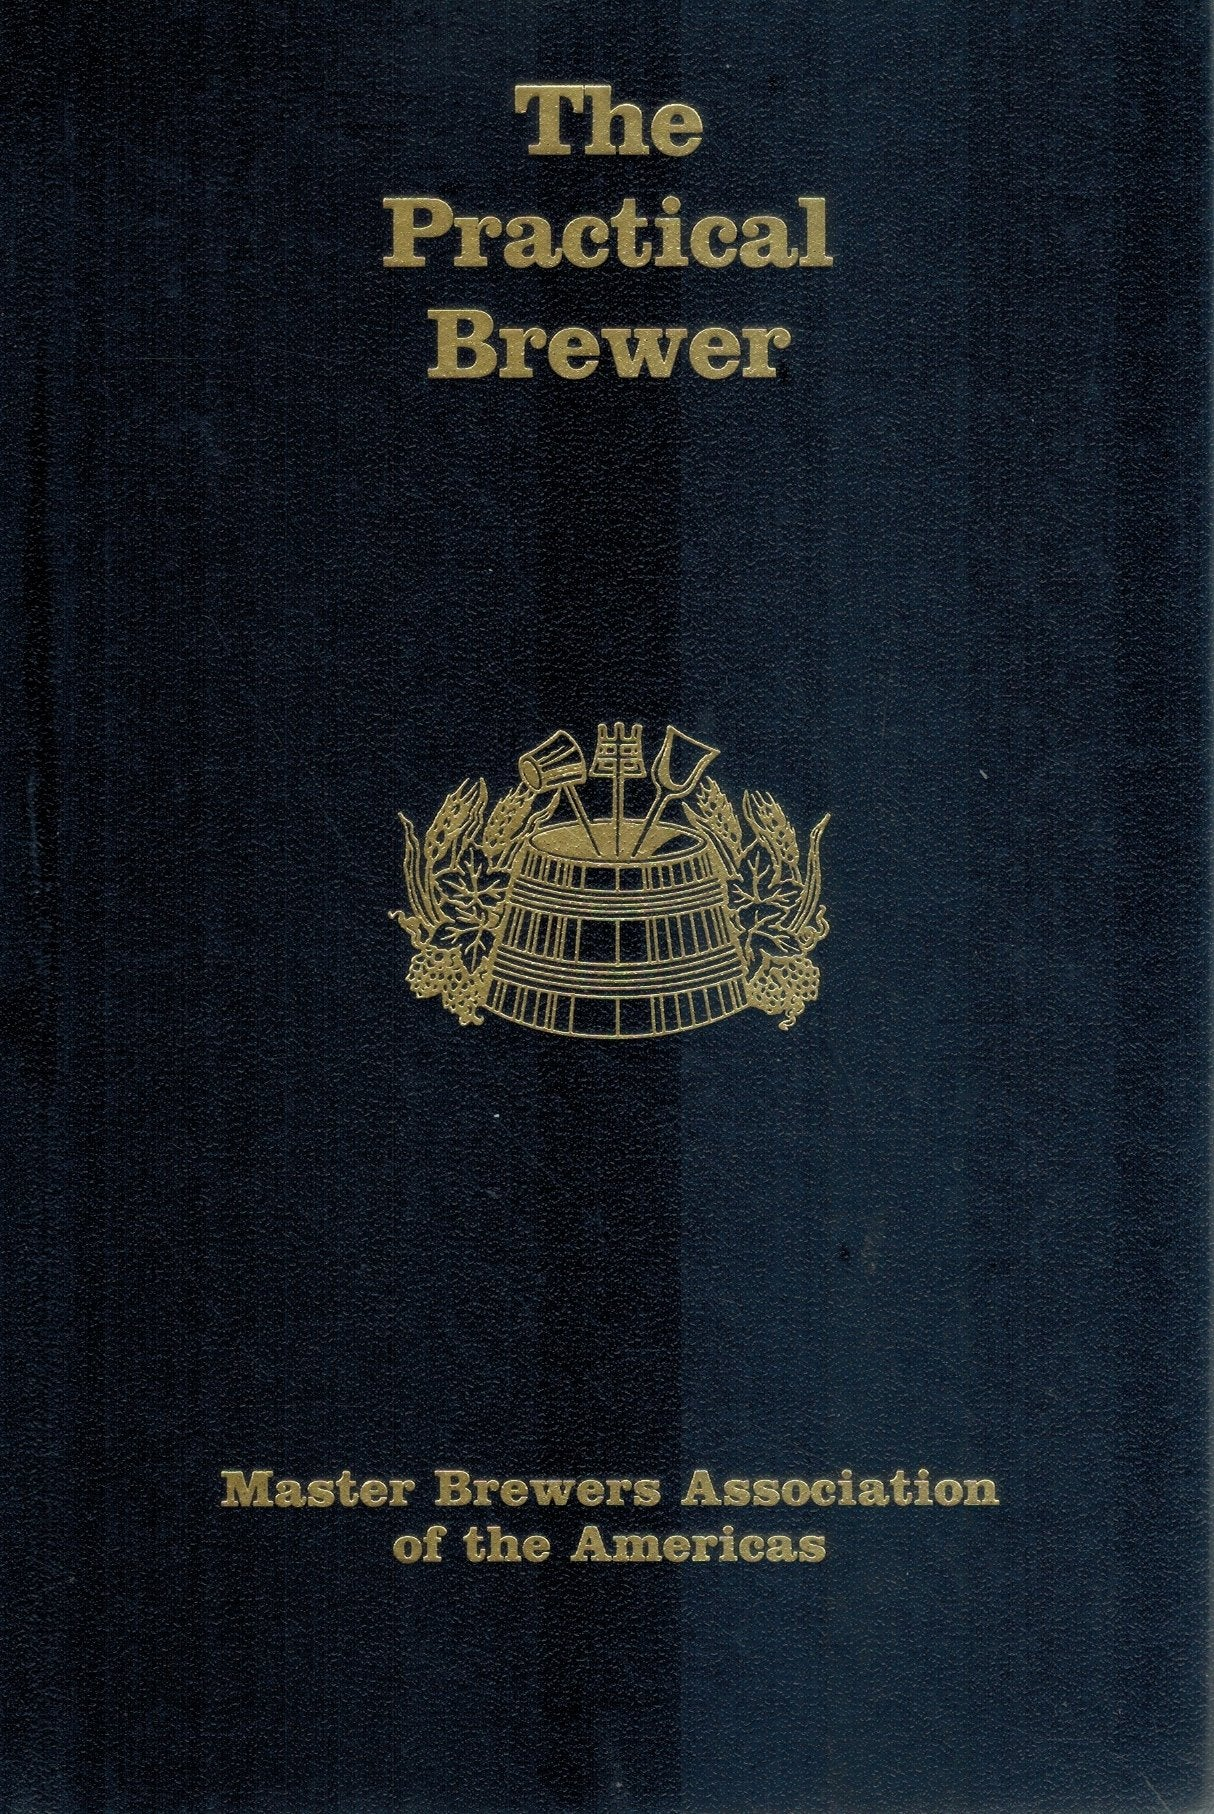 The Practical Brewer, Third Edition  by McCabe, John T.